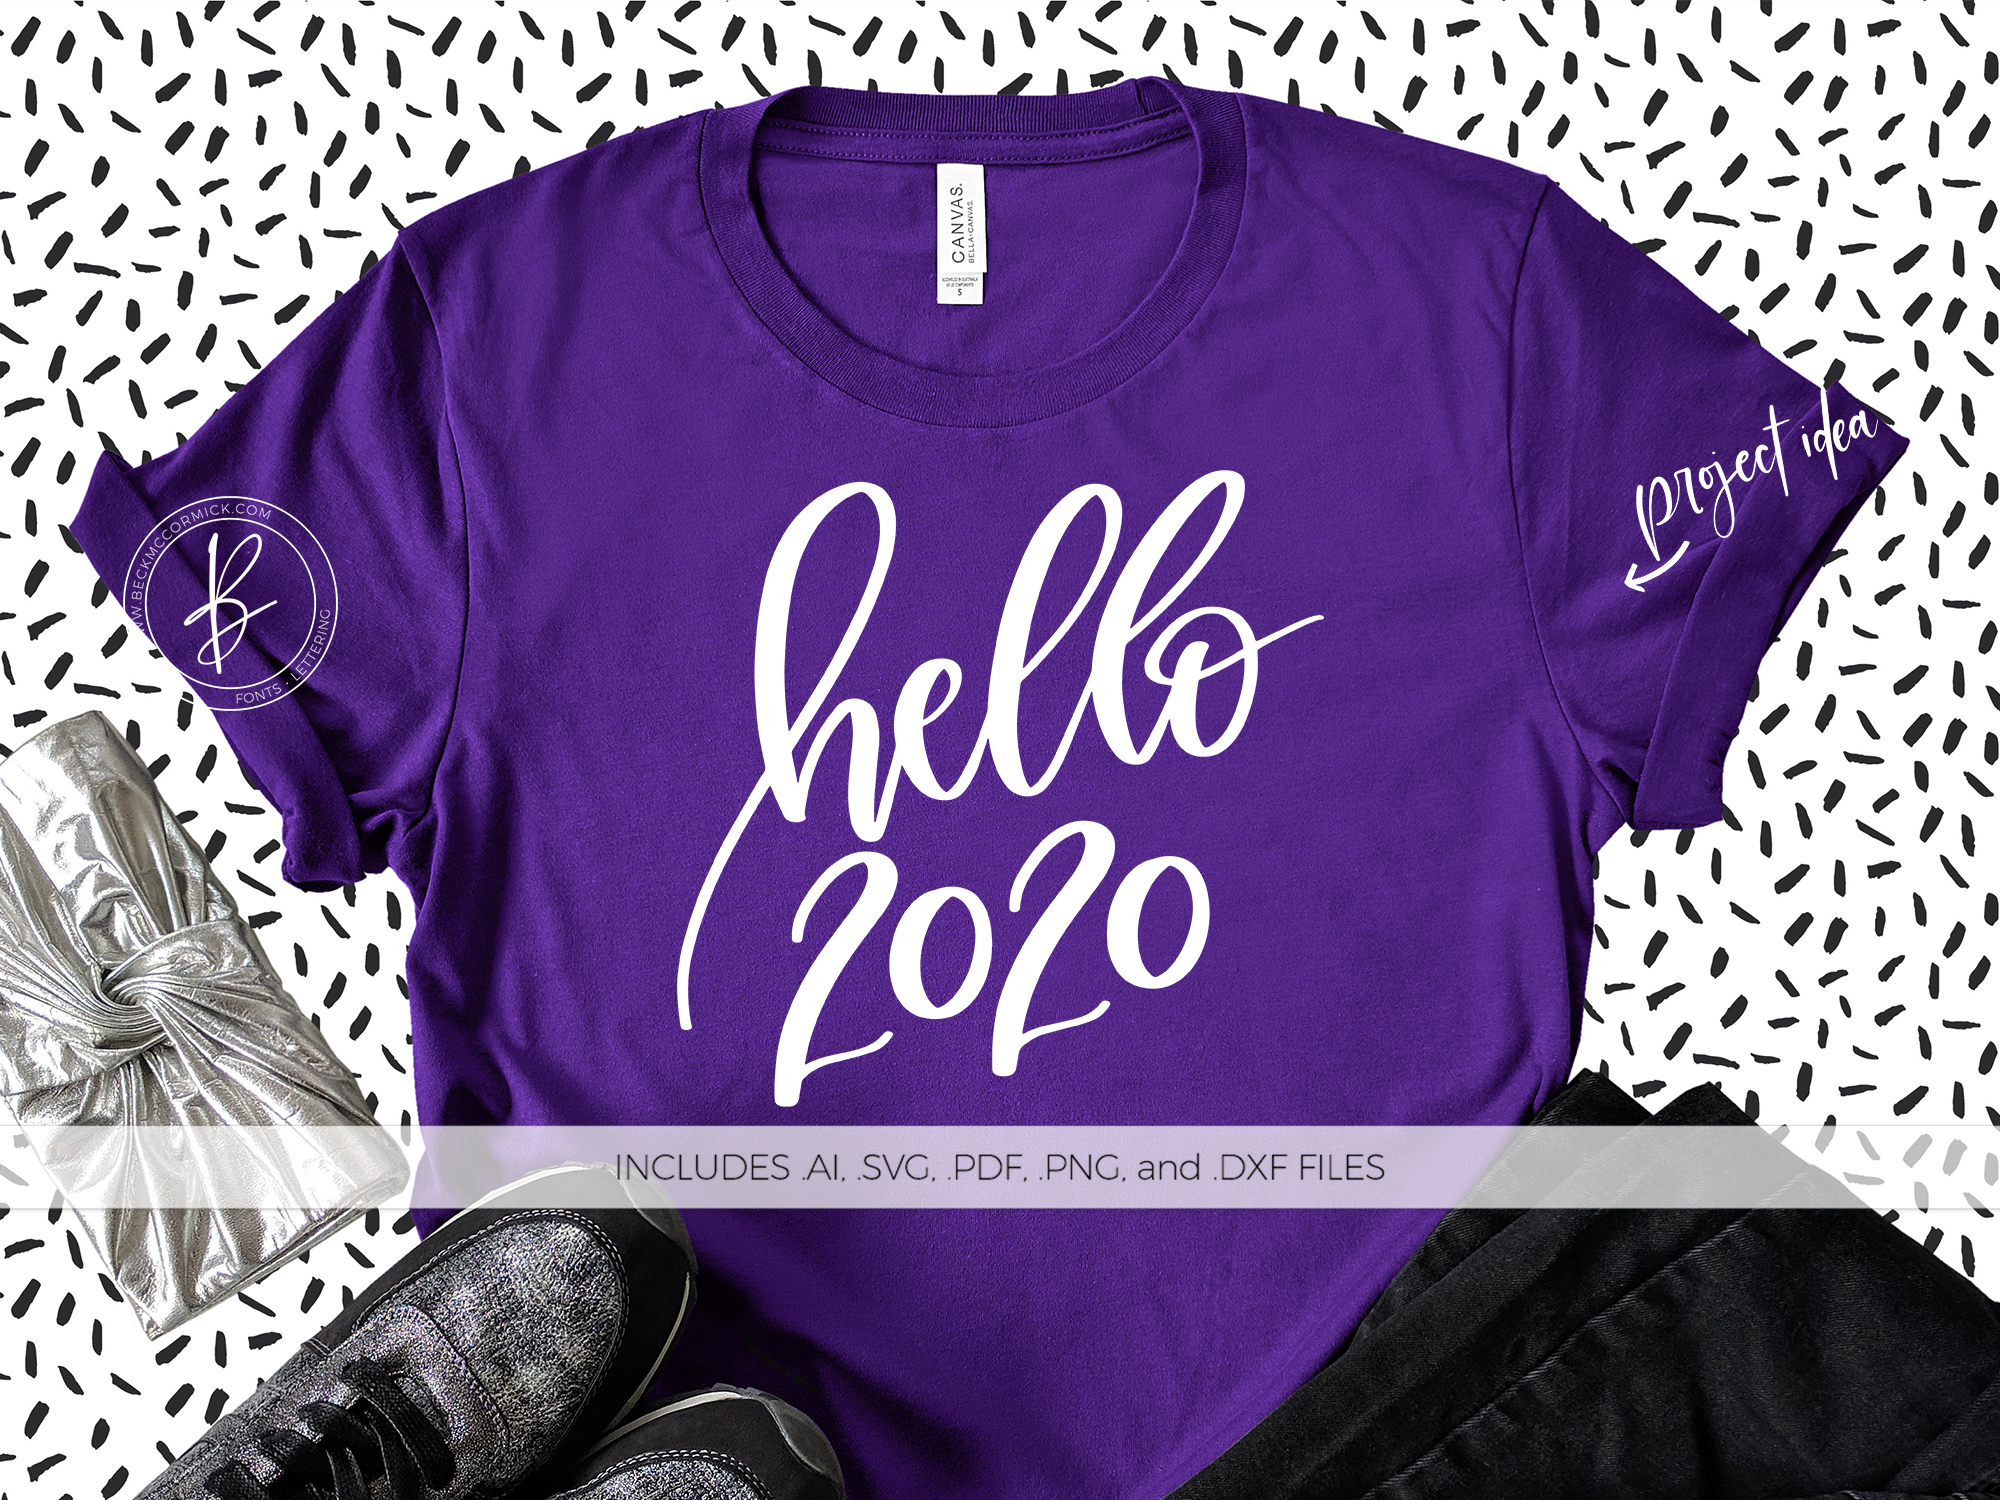 Download Free Hello 2020 Graphic By Beckmccormick Creative Fabrica for Cricut Explore, Silhouette and other cutting machines.